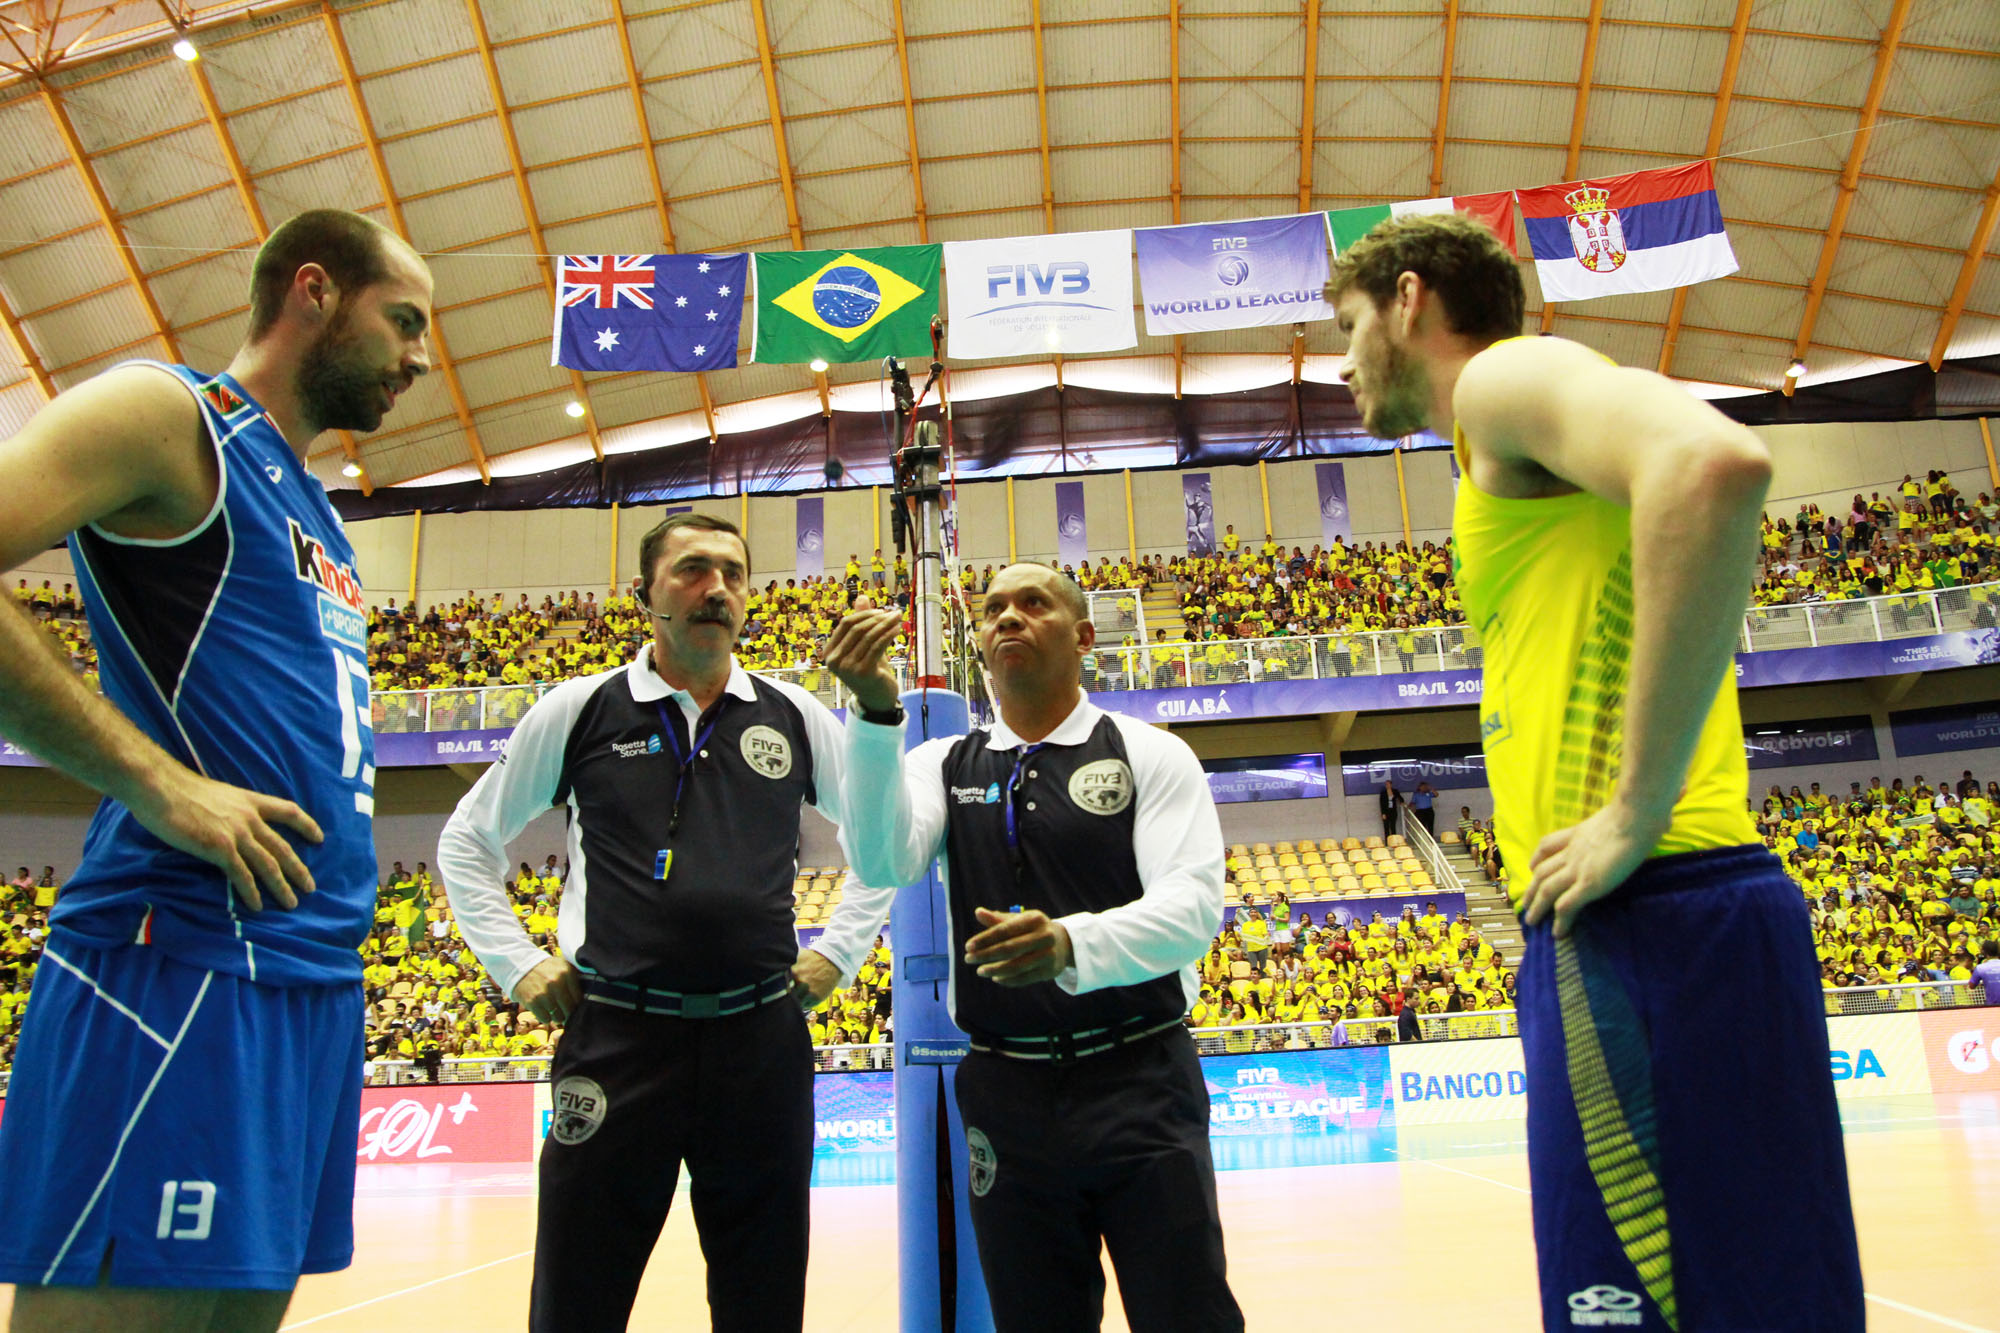 http://www.fivb.org/Vis2009/Images/GetImage.asmx?No=201489959&maxSize=960